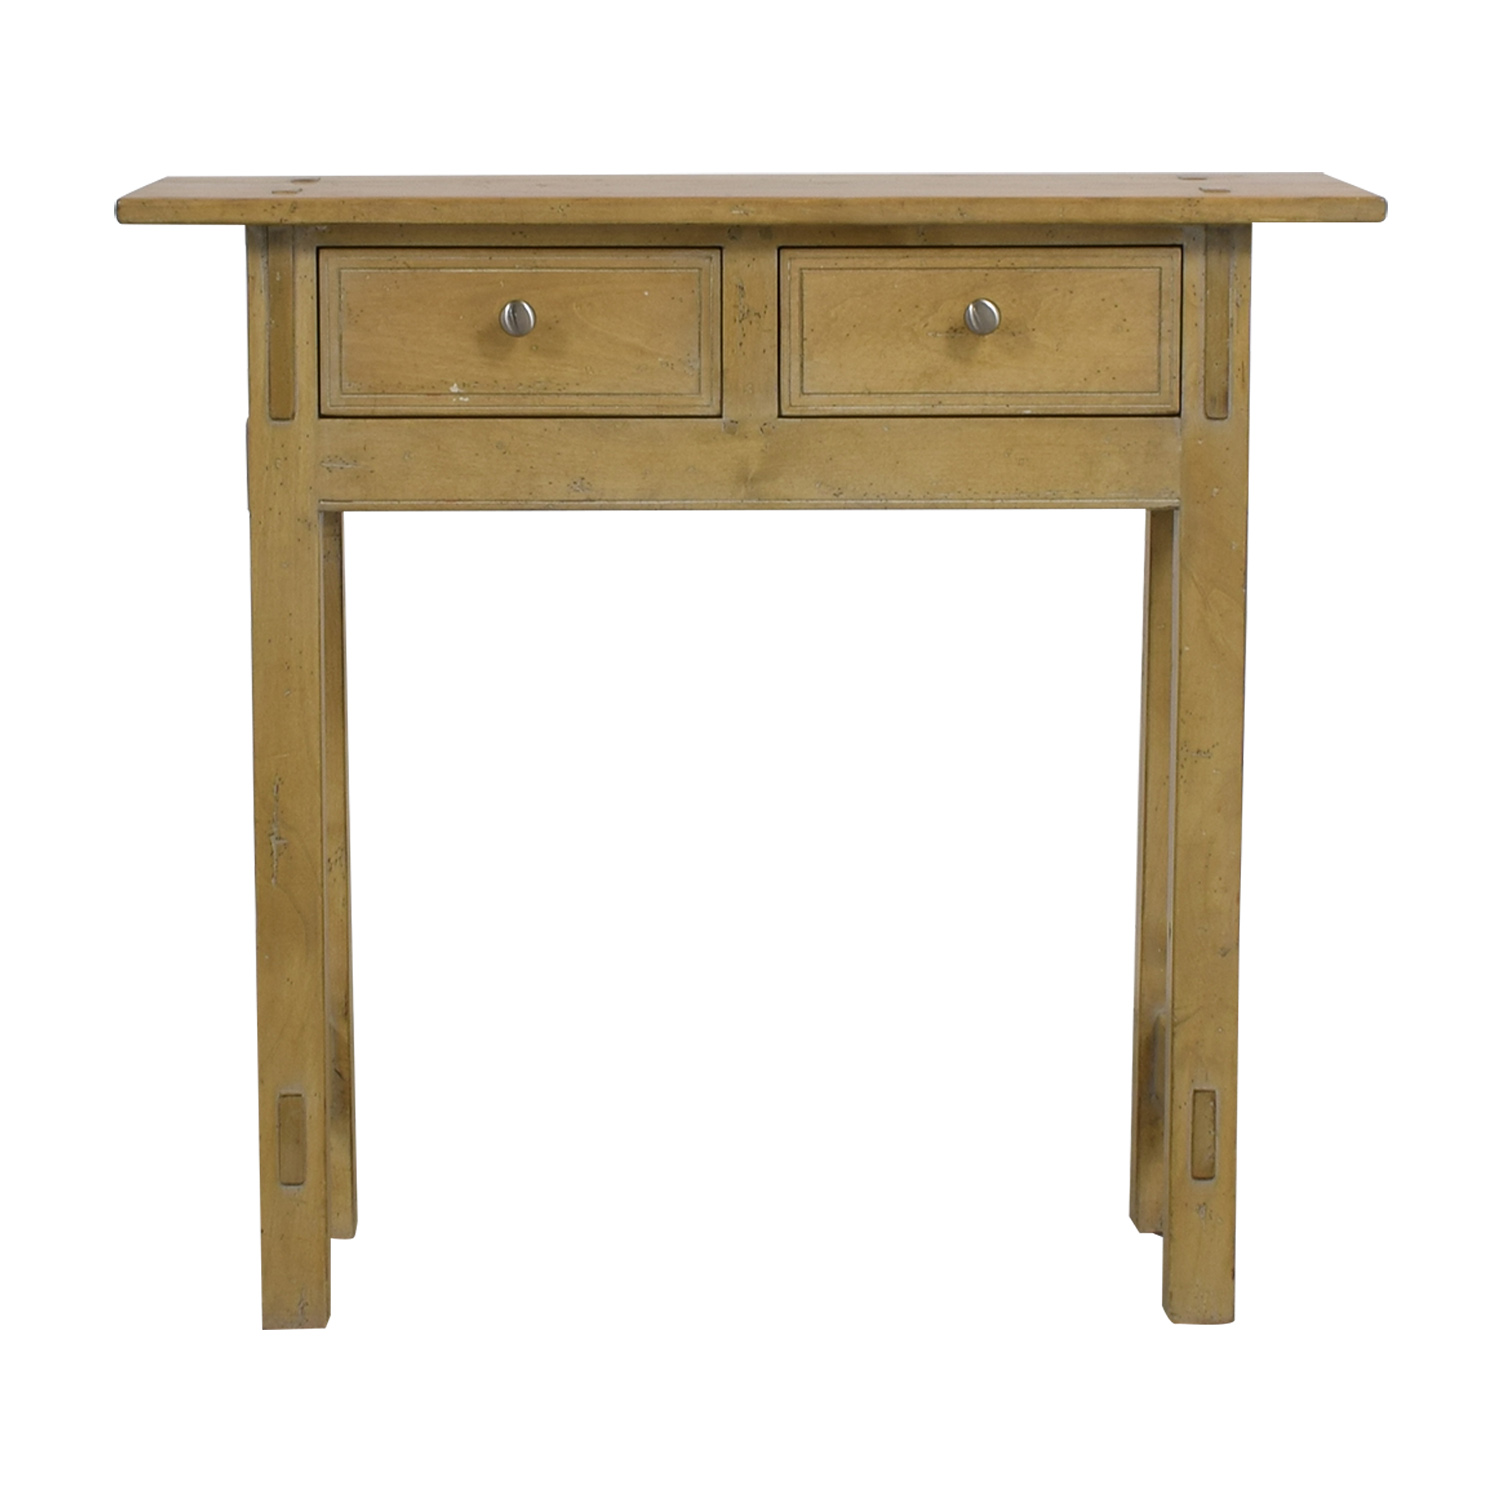 Shop Guy Chaddock U0026 Co Natural Rustic Accent Table Guy Chaddock ...